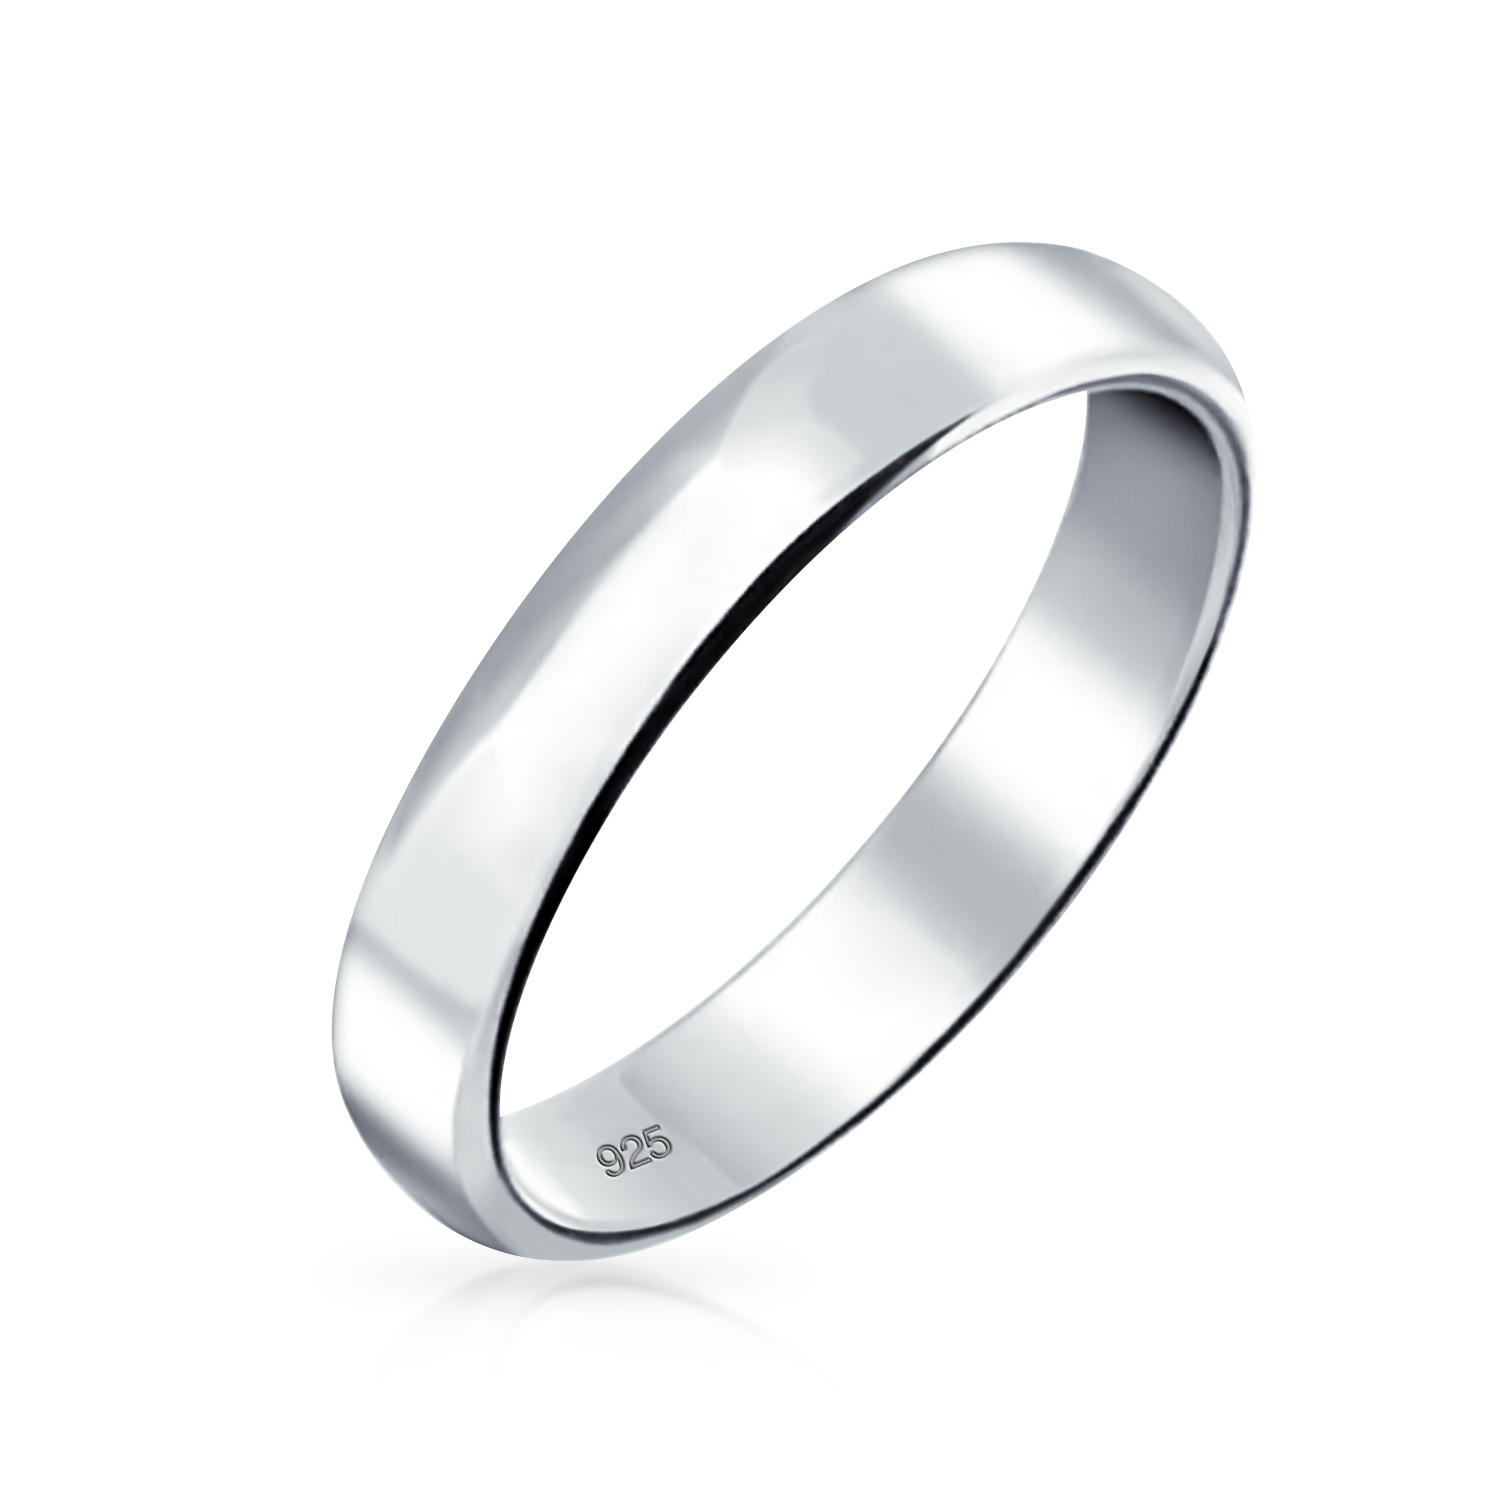 It is just an image of Minimalist Plain Simple 466 Sterling Silver Dome Couples Wedding Band Ring For Women For Men 46MM